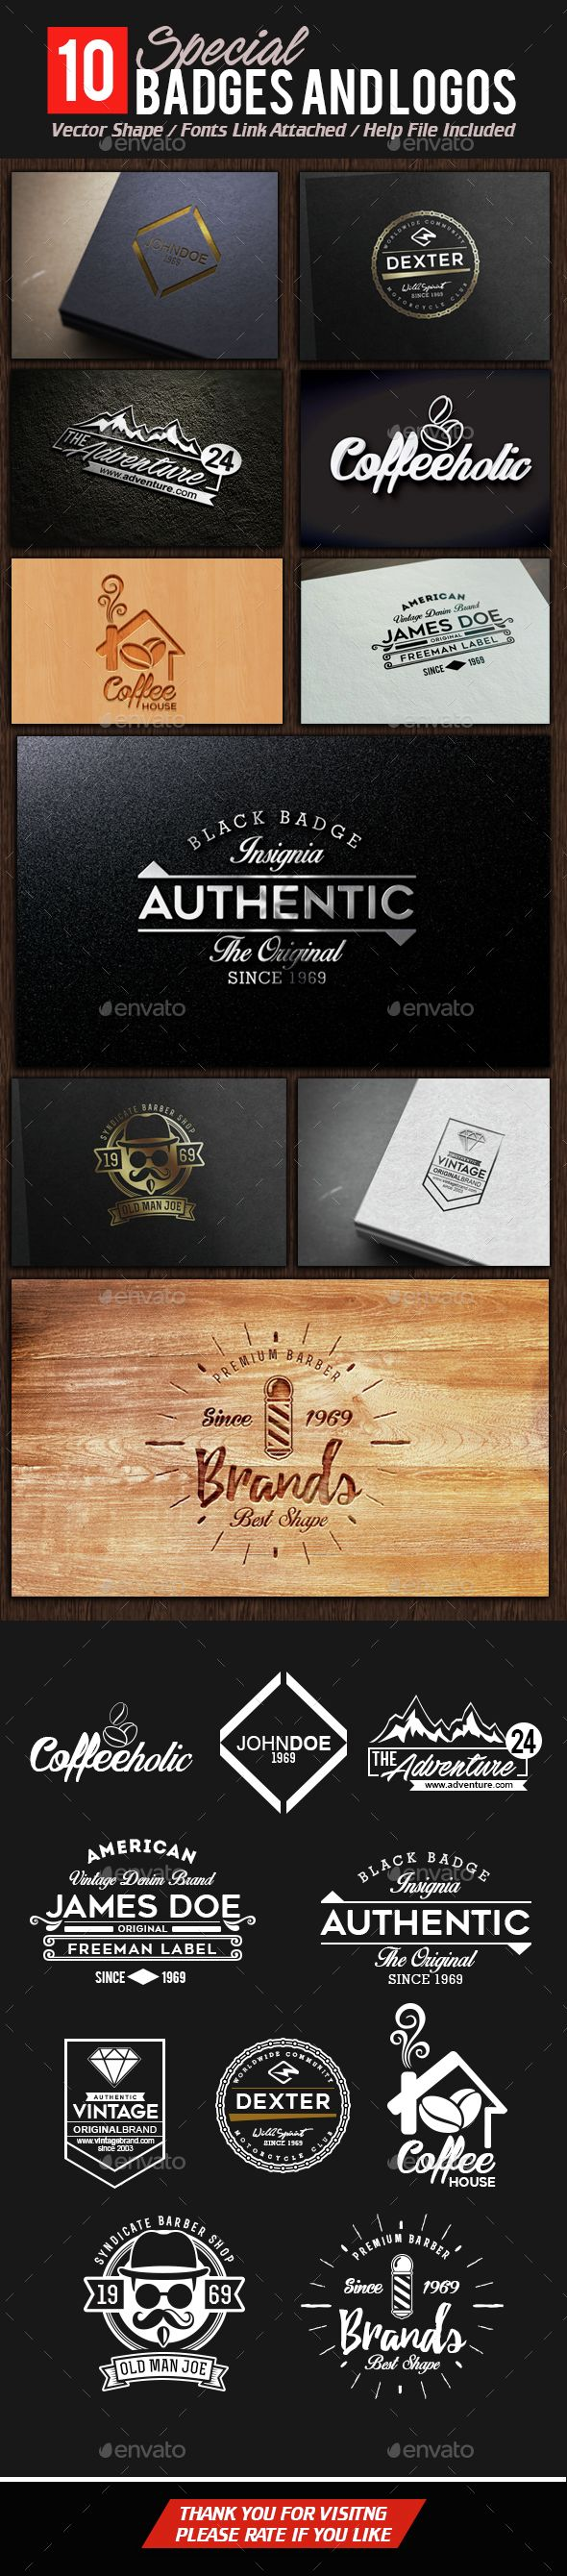 Badges and Logos Template PSD. Download here: http://graphicriver.net/item/badges-and-logos/14721043?ref=ksioks